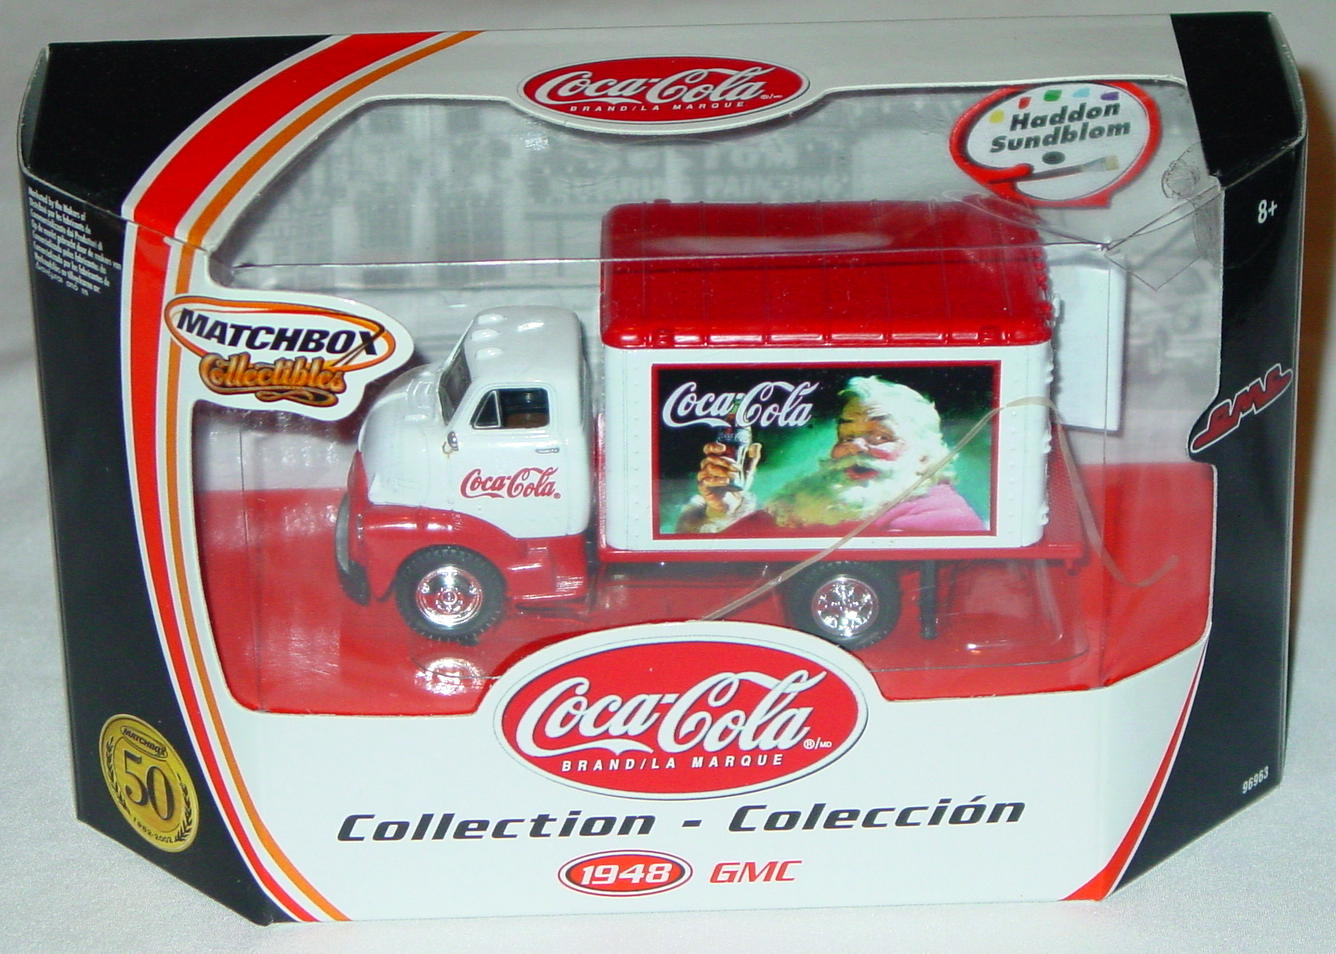 Collectibles - 96963 48 GMC Truck Coke Haddon Sundblom